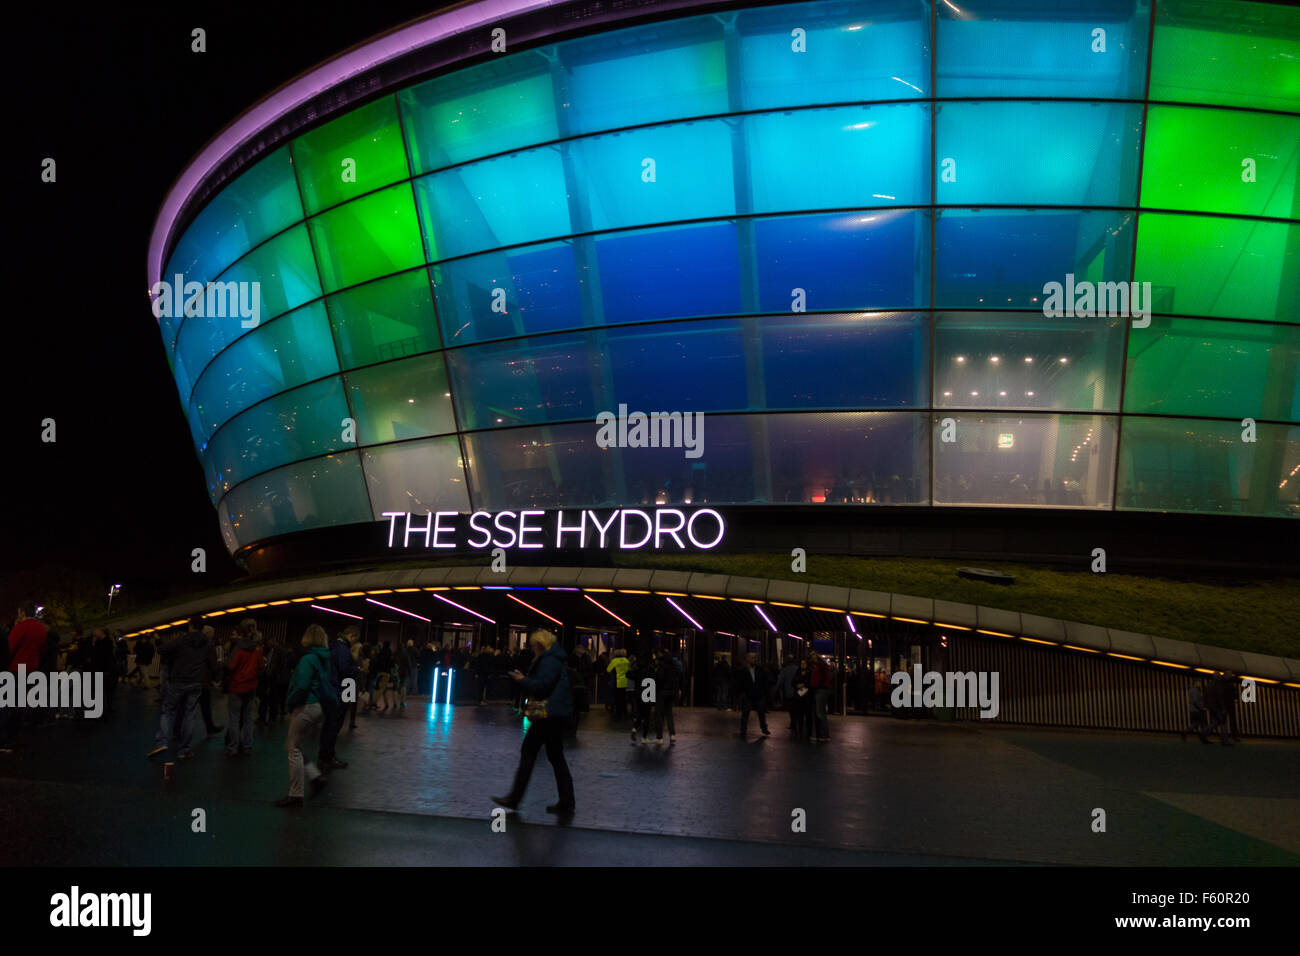 music fans entering The SSE Hydro music and entertainment arena - Glasgow, Scotland, UK - Stock Image